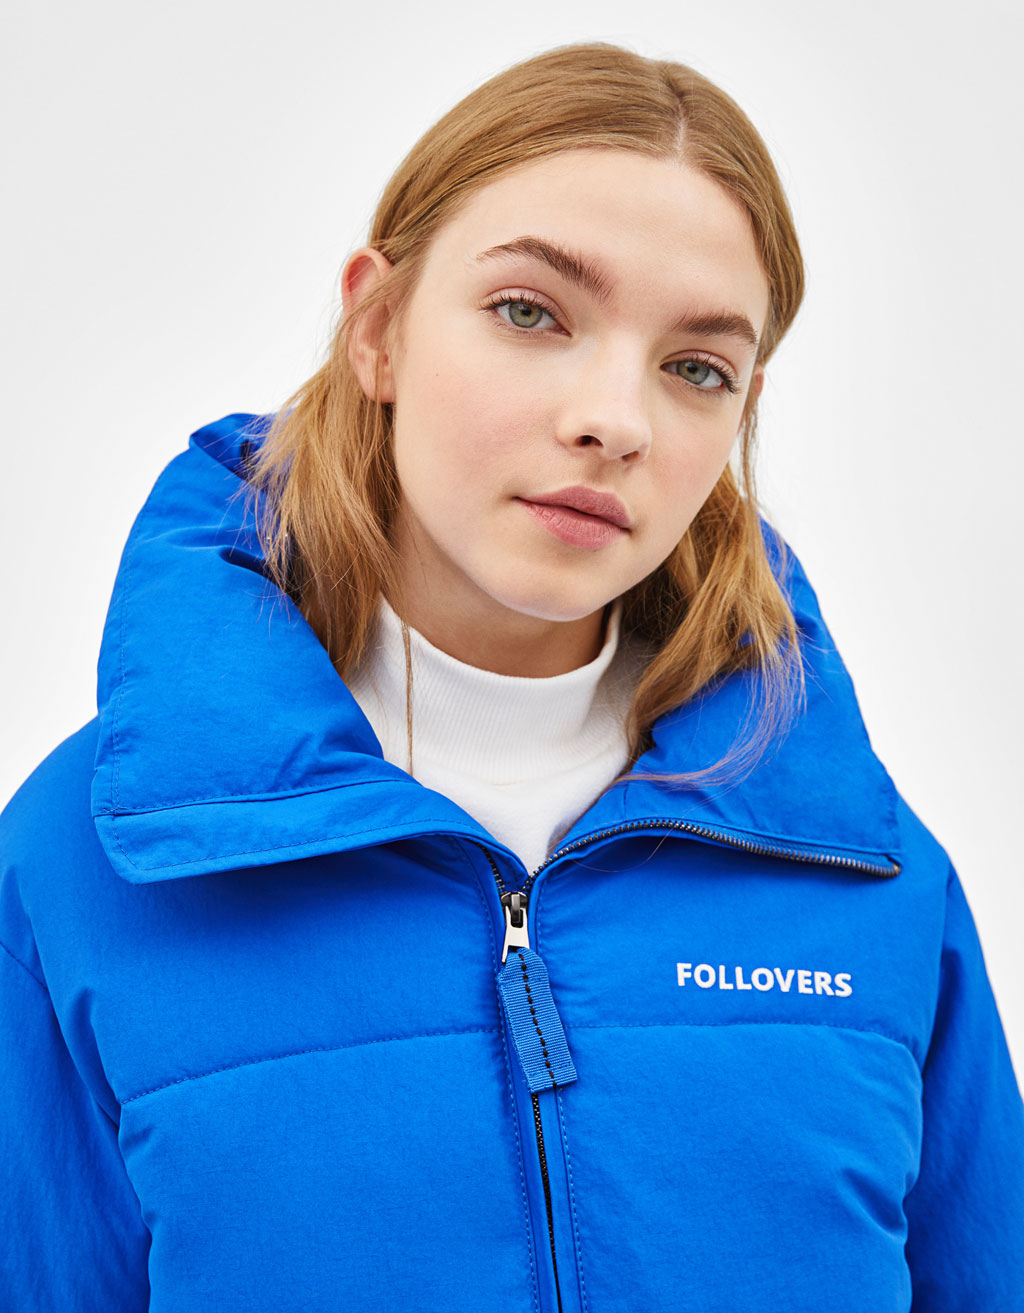 'Followers' puffer jacket